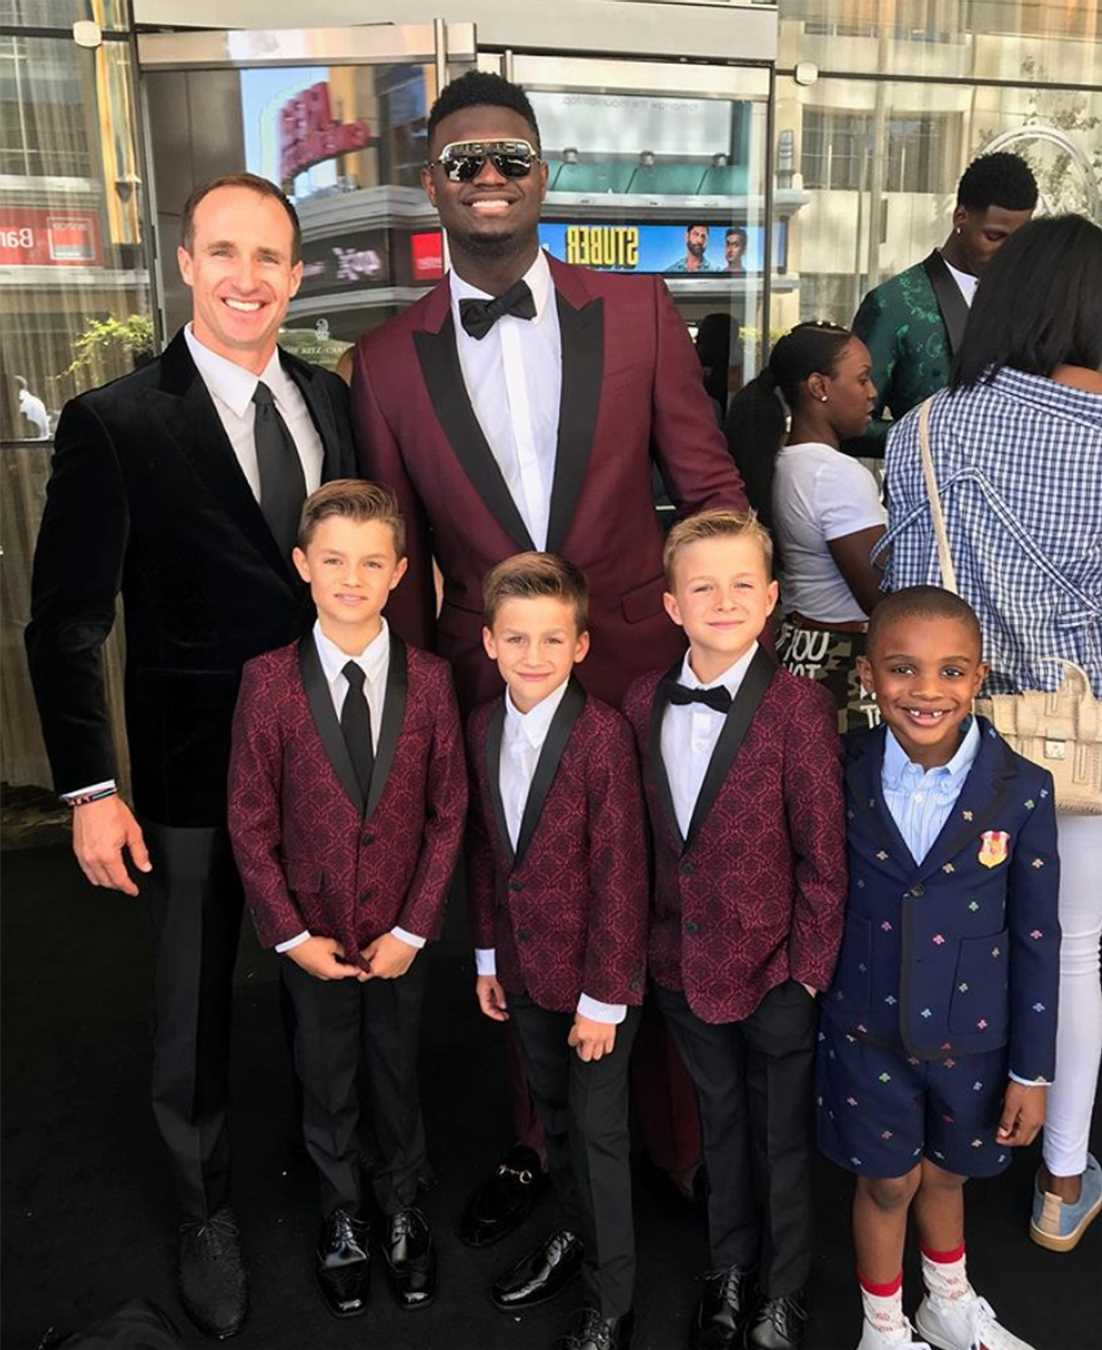 Drew Brees' Three Boys Meet Zion Williamson — in Coordinating Tuxes — at the 2019 ESPY Awards